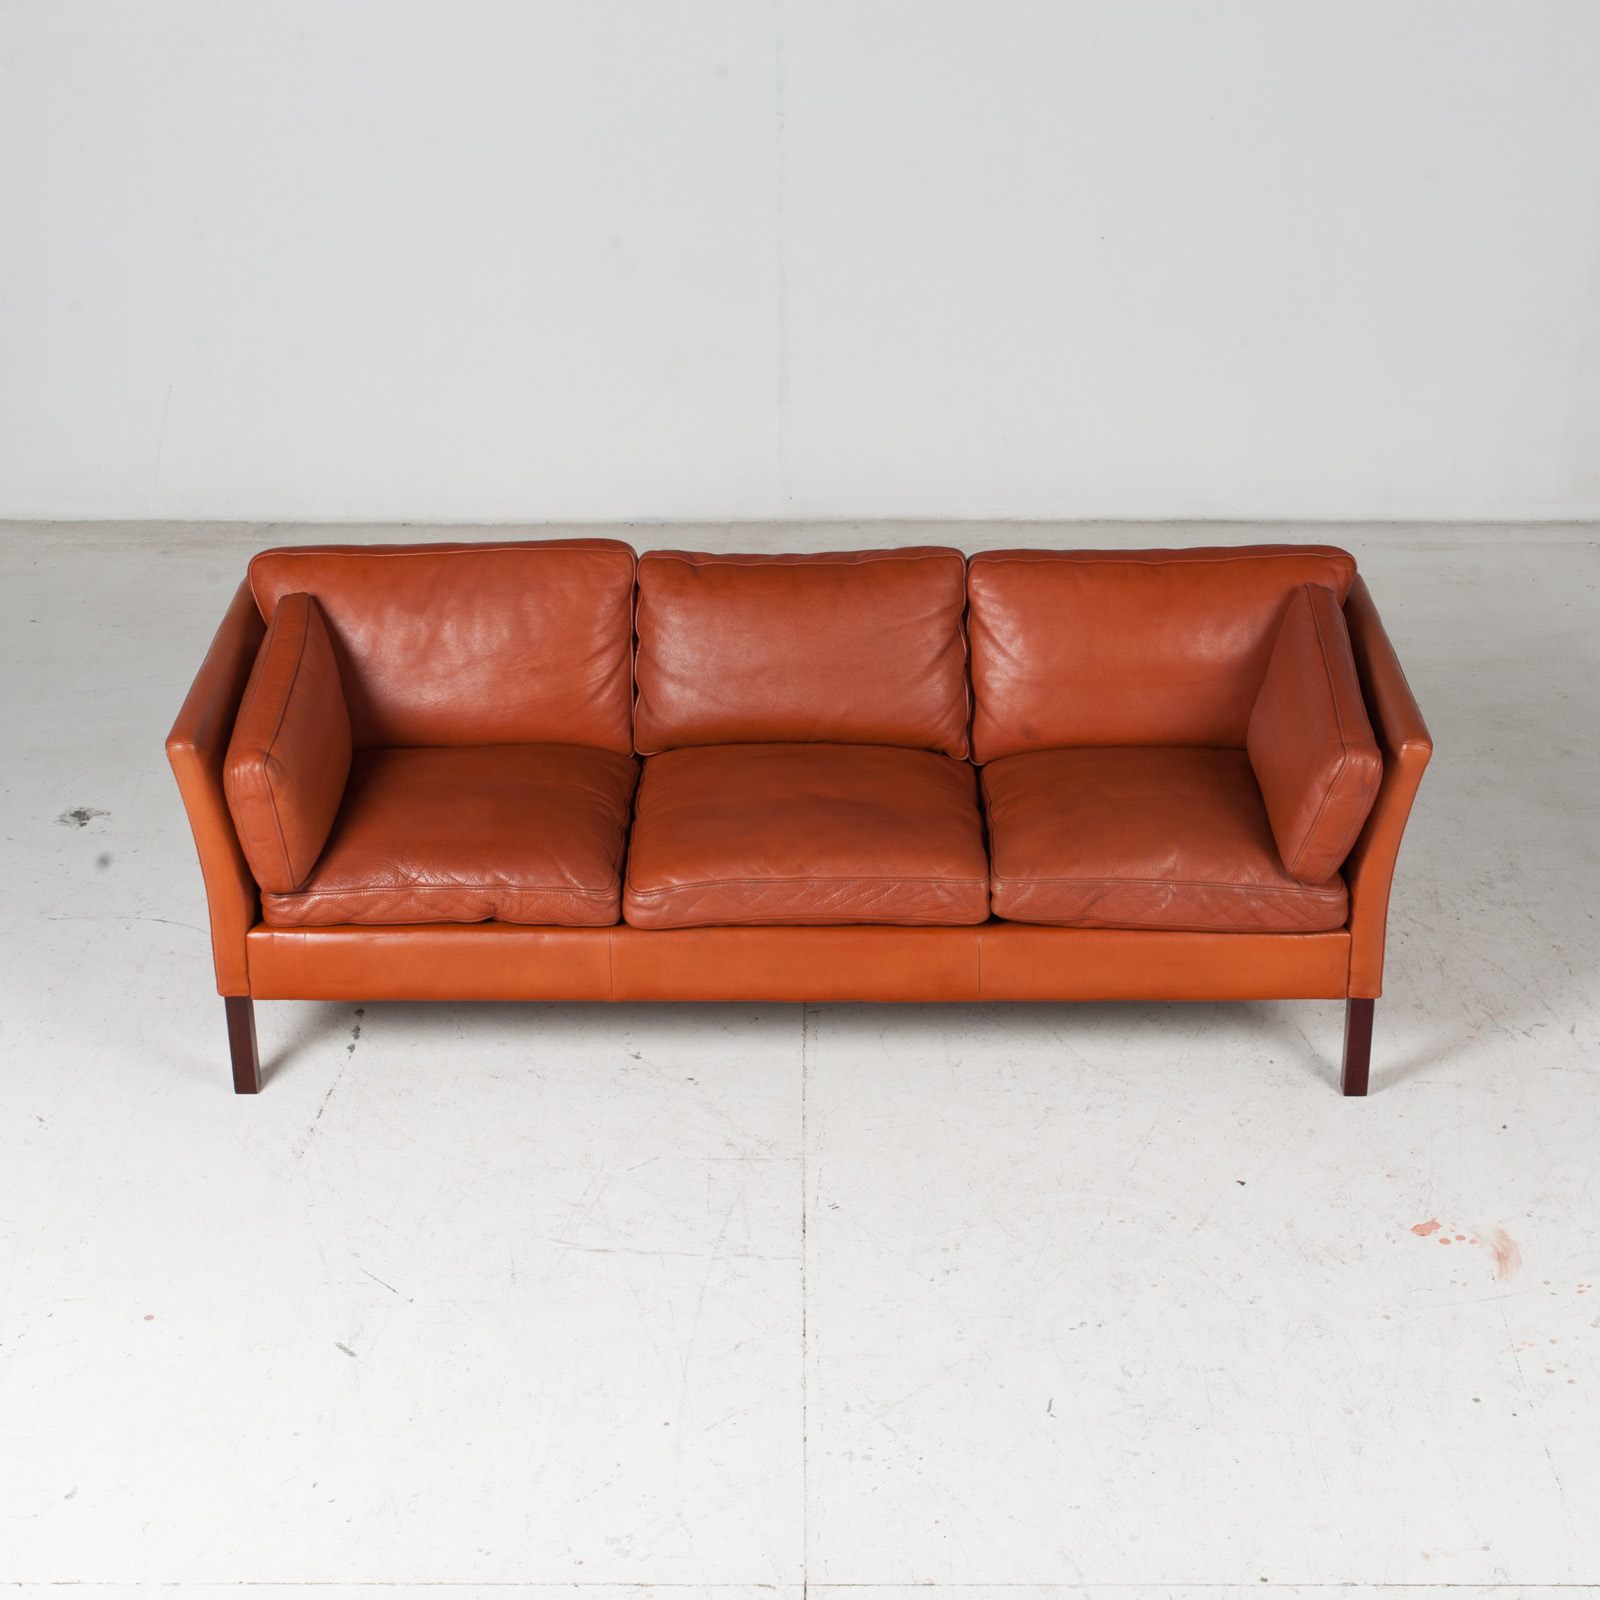 3 Seat Sofa By Stouby In Tan Leather, 1960s, Denmark 4